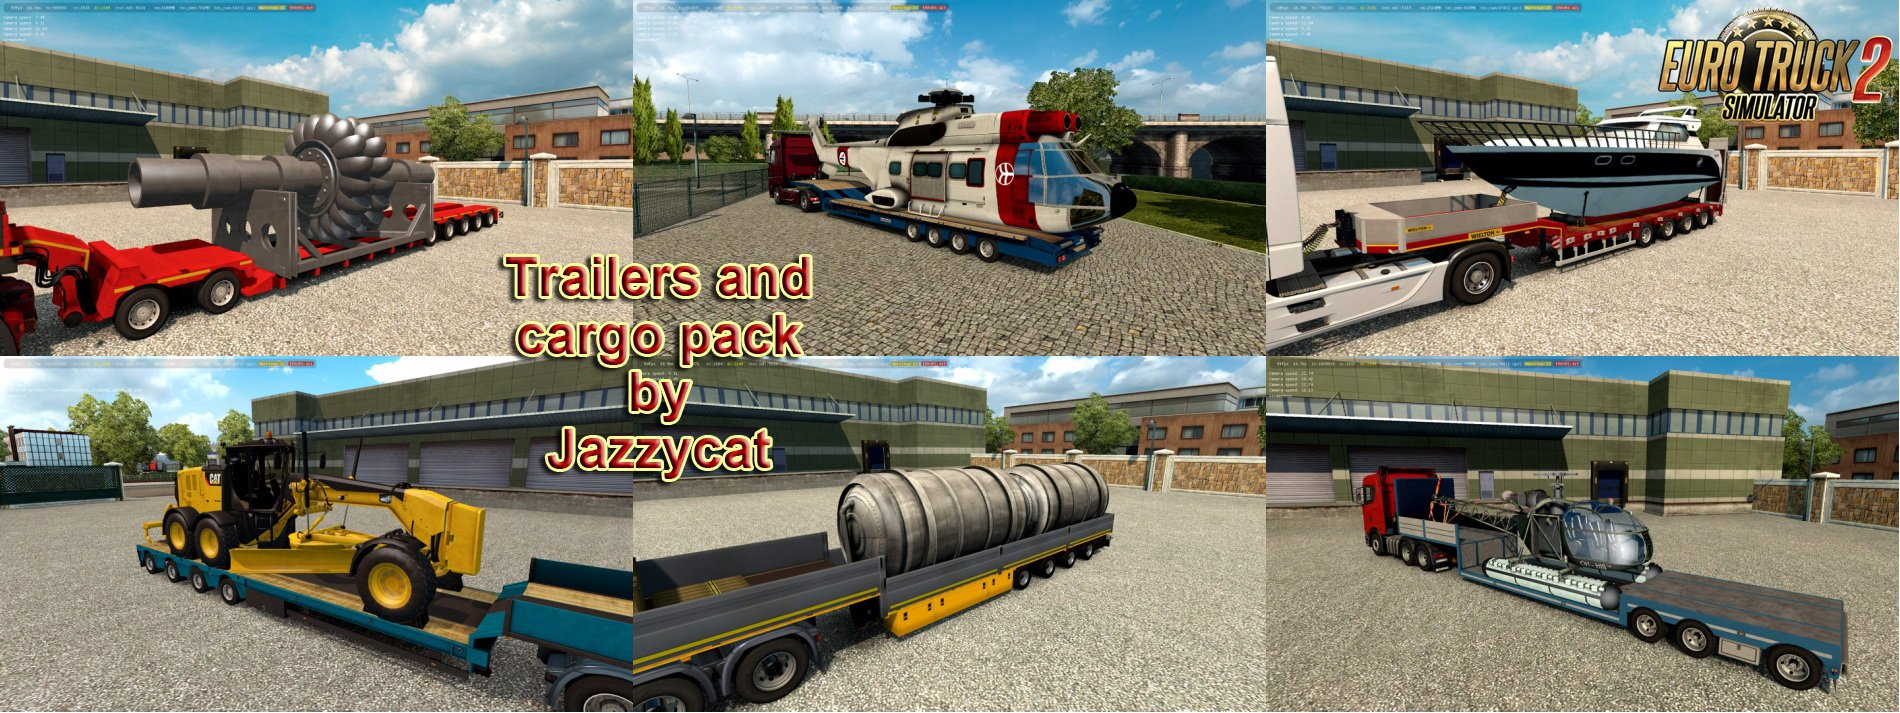 Trailers and Cargo Pack v7.2 by Jazzycat